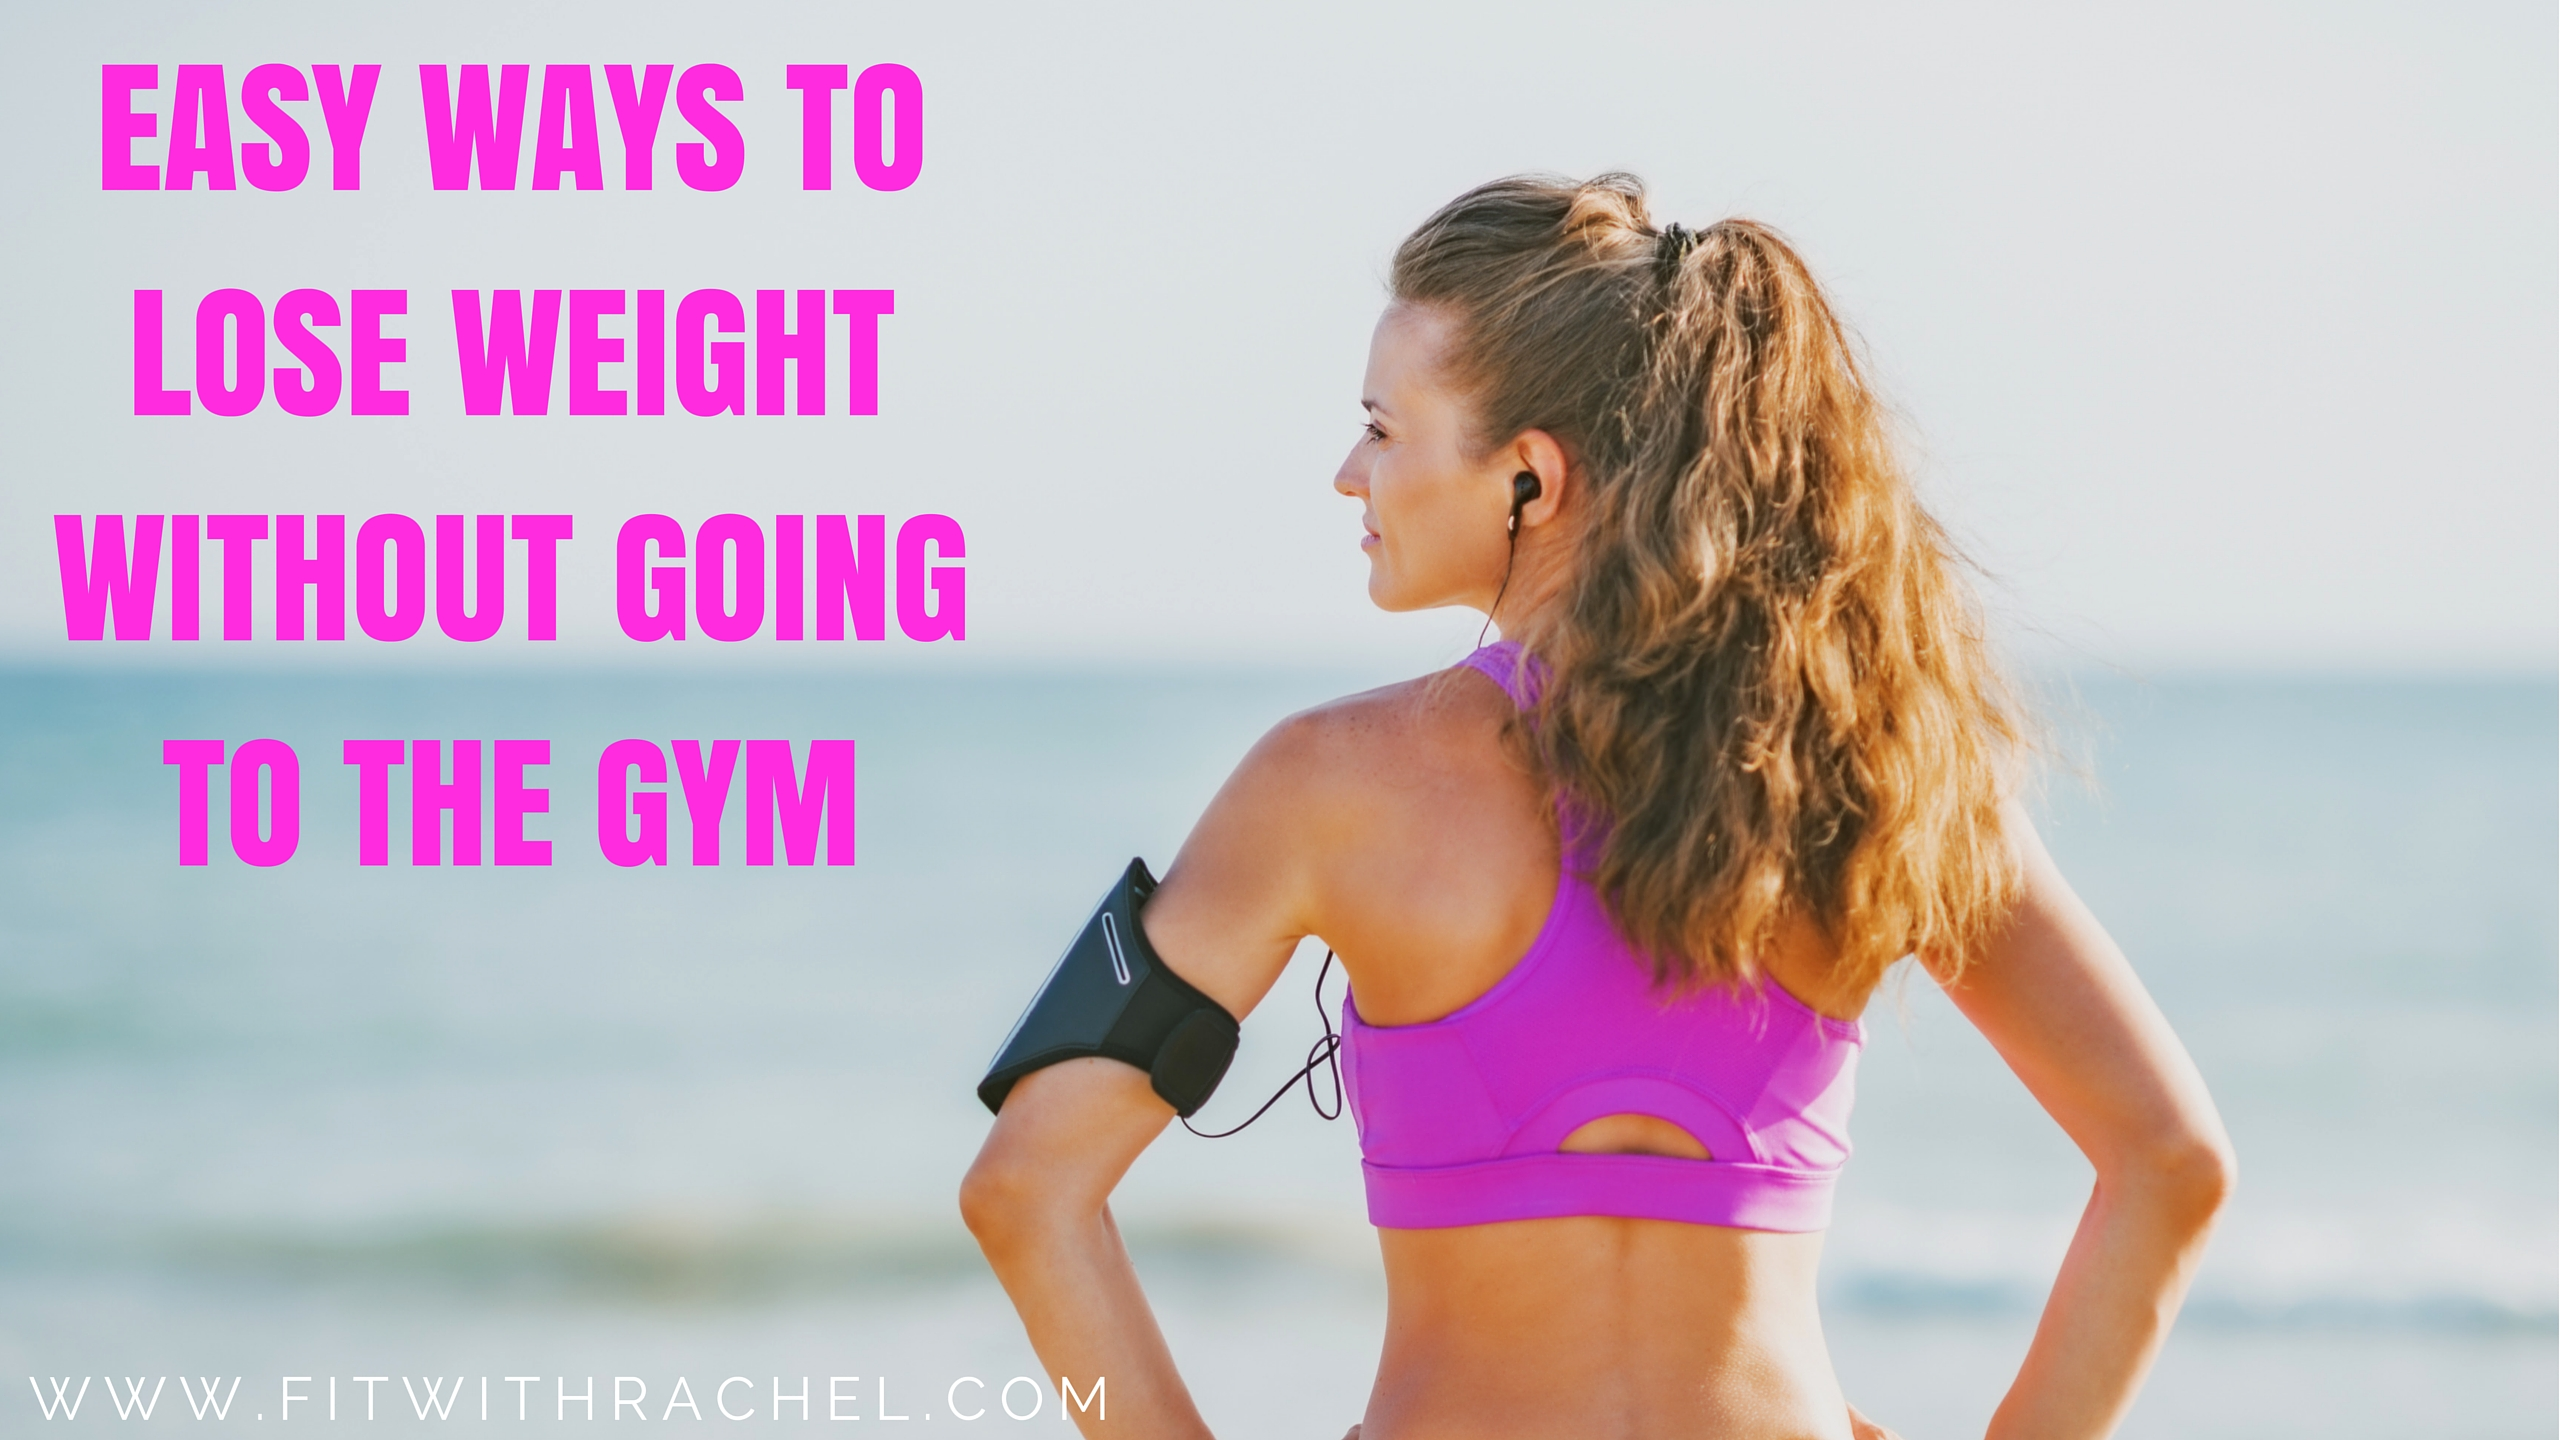 How To Lose Weight In A Week Without Going The Gym